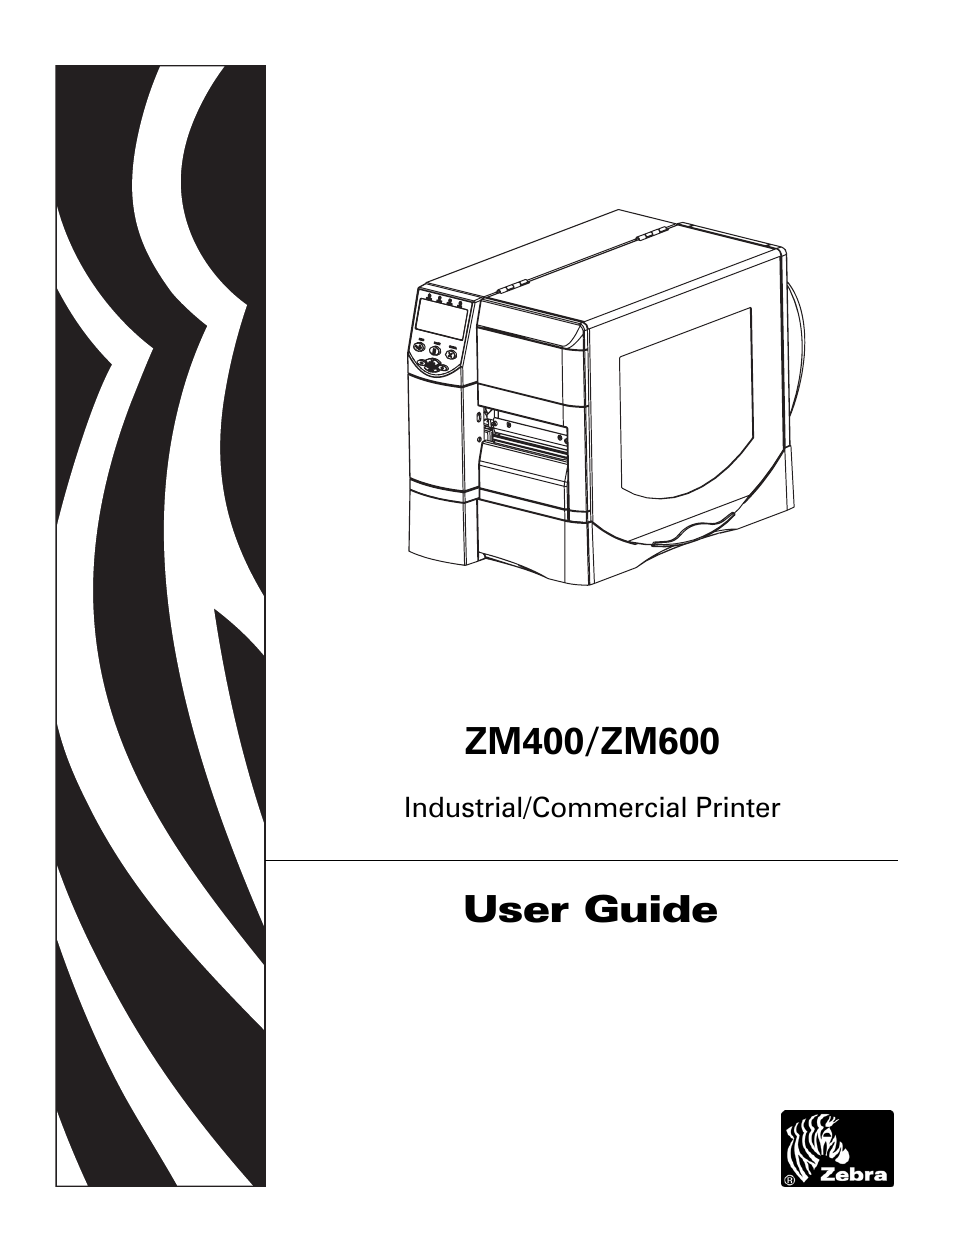 zebra zm400 user manual 146 pages also for zm600 rh manualsdir com Zebra ZM600 IP Address Zebra ZM400 User Manual